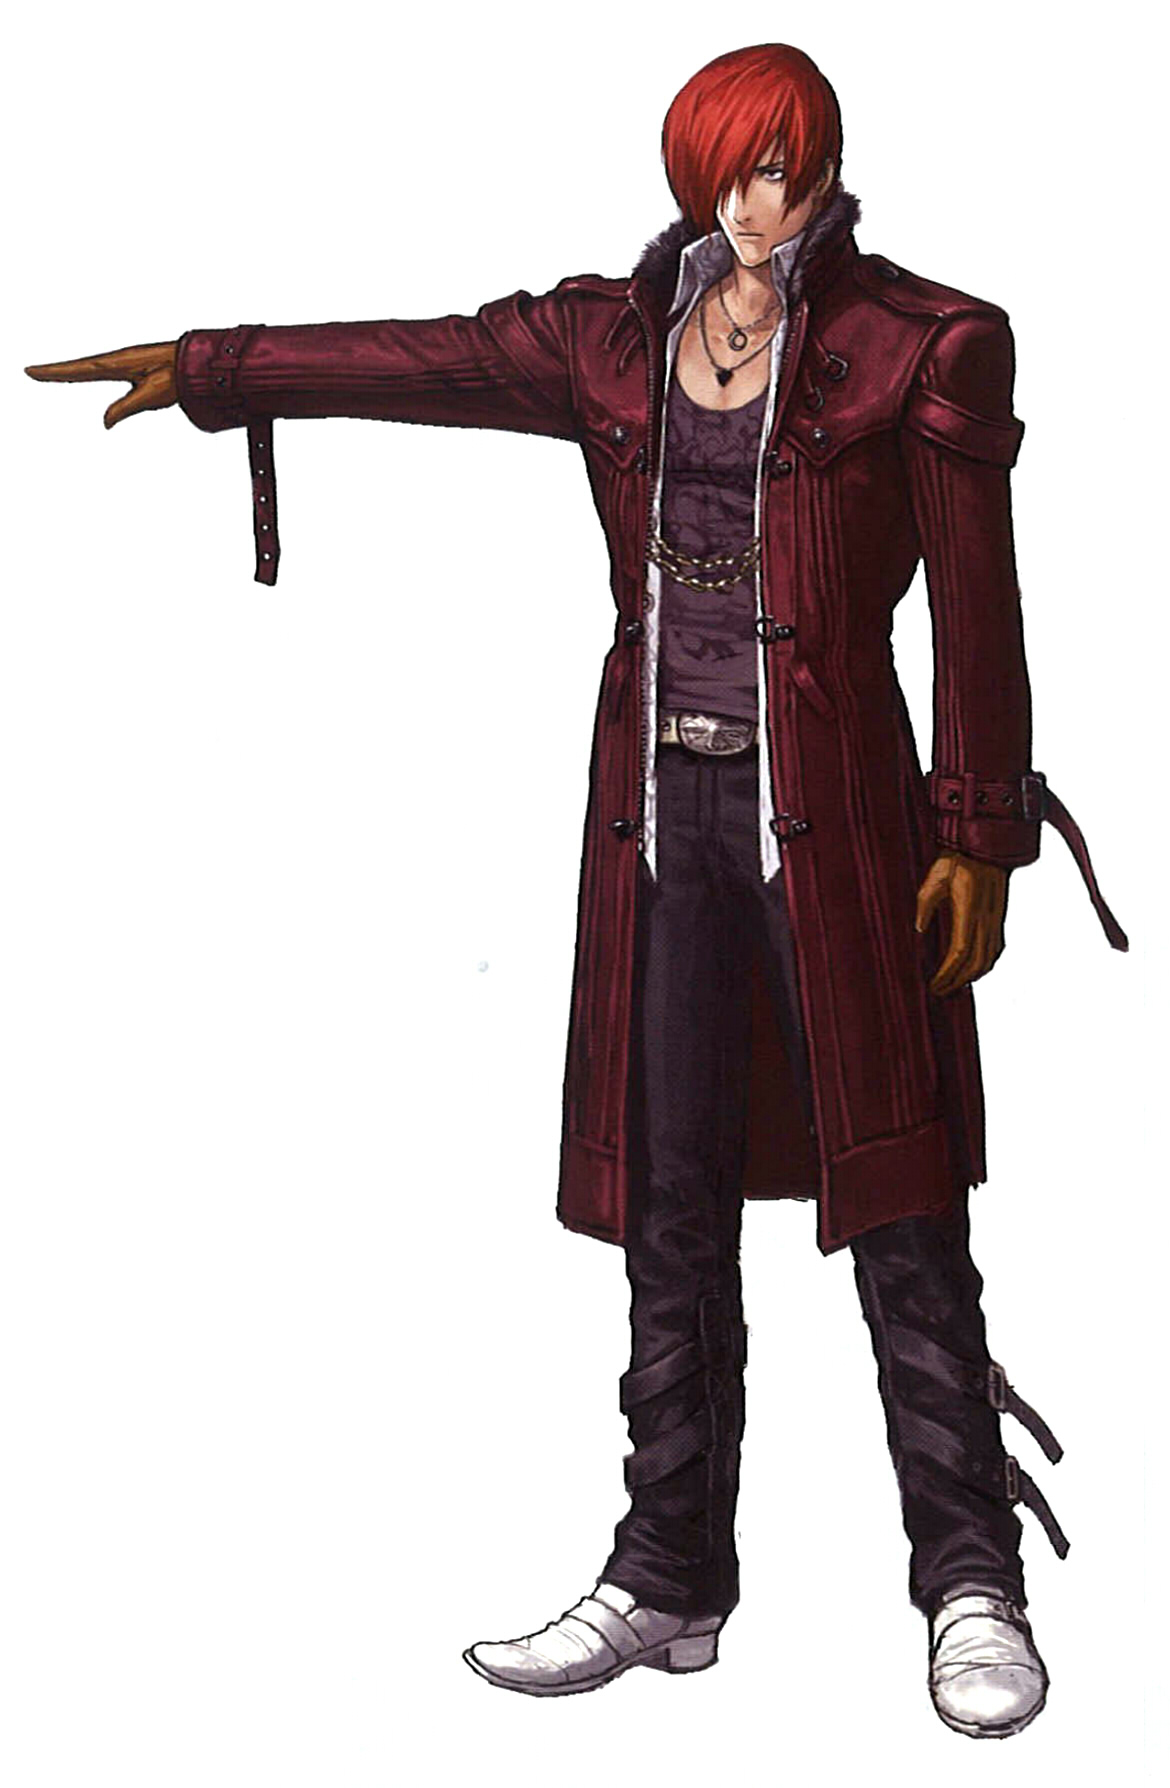 Iori Yagami | SNK Wiki | FANDOM powered by Wikia